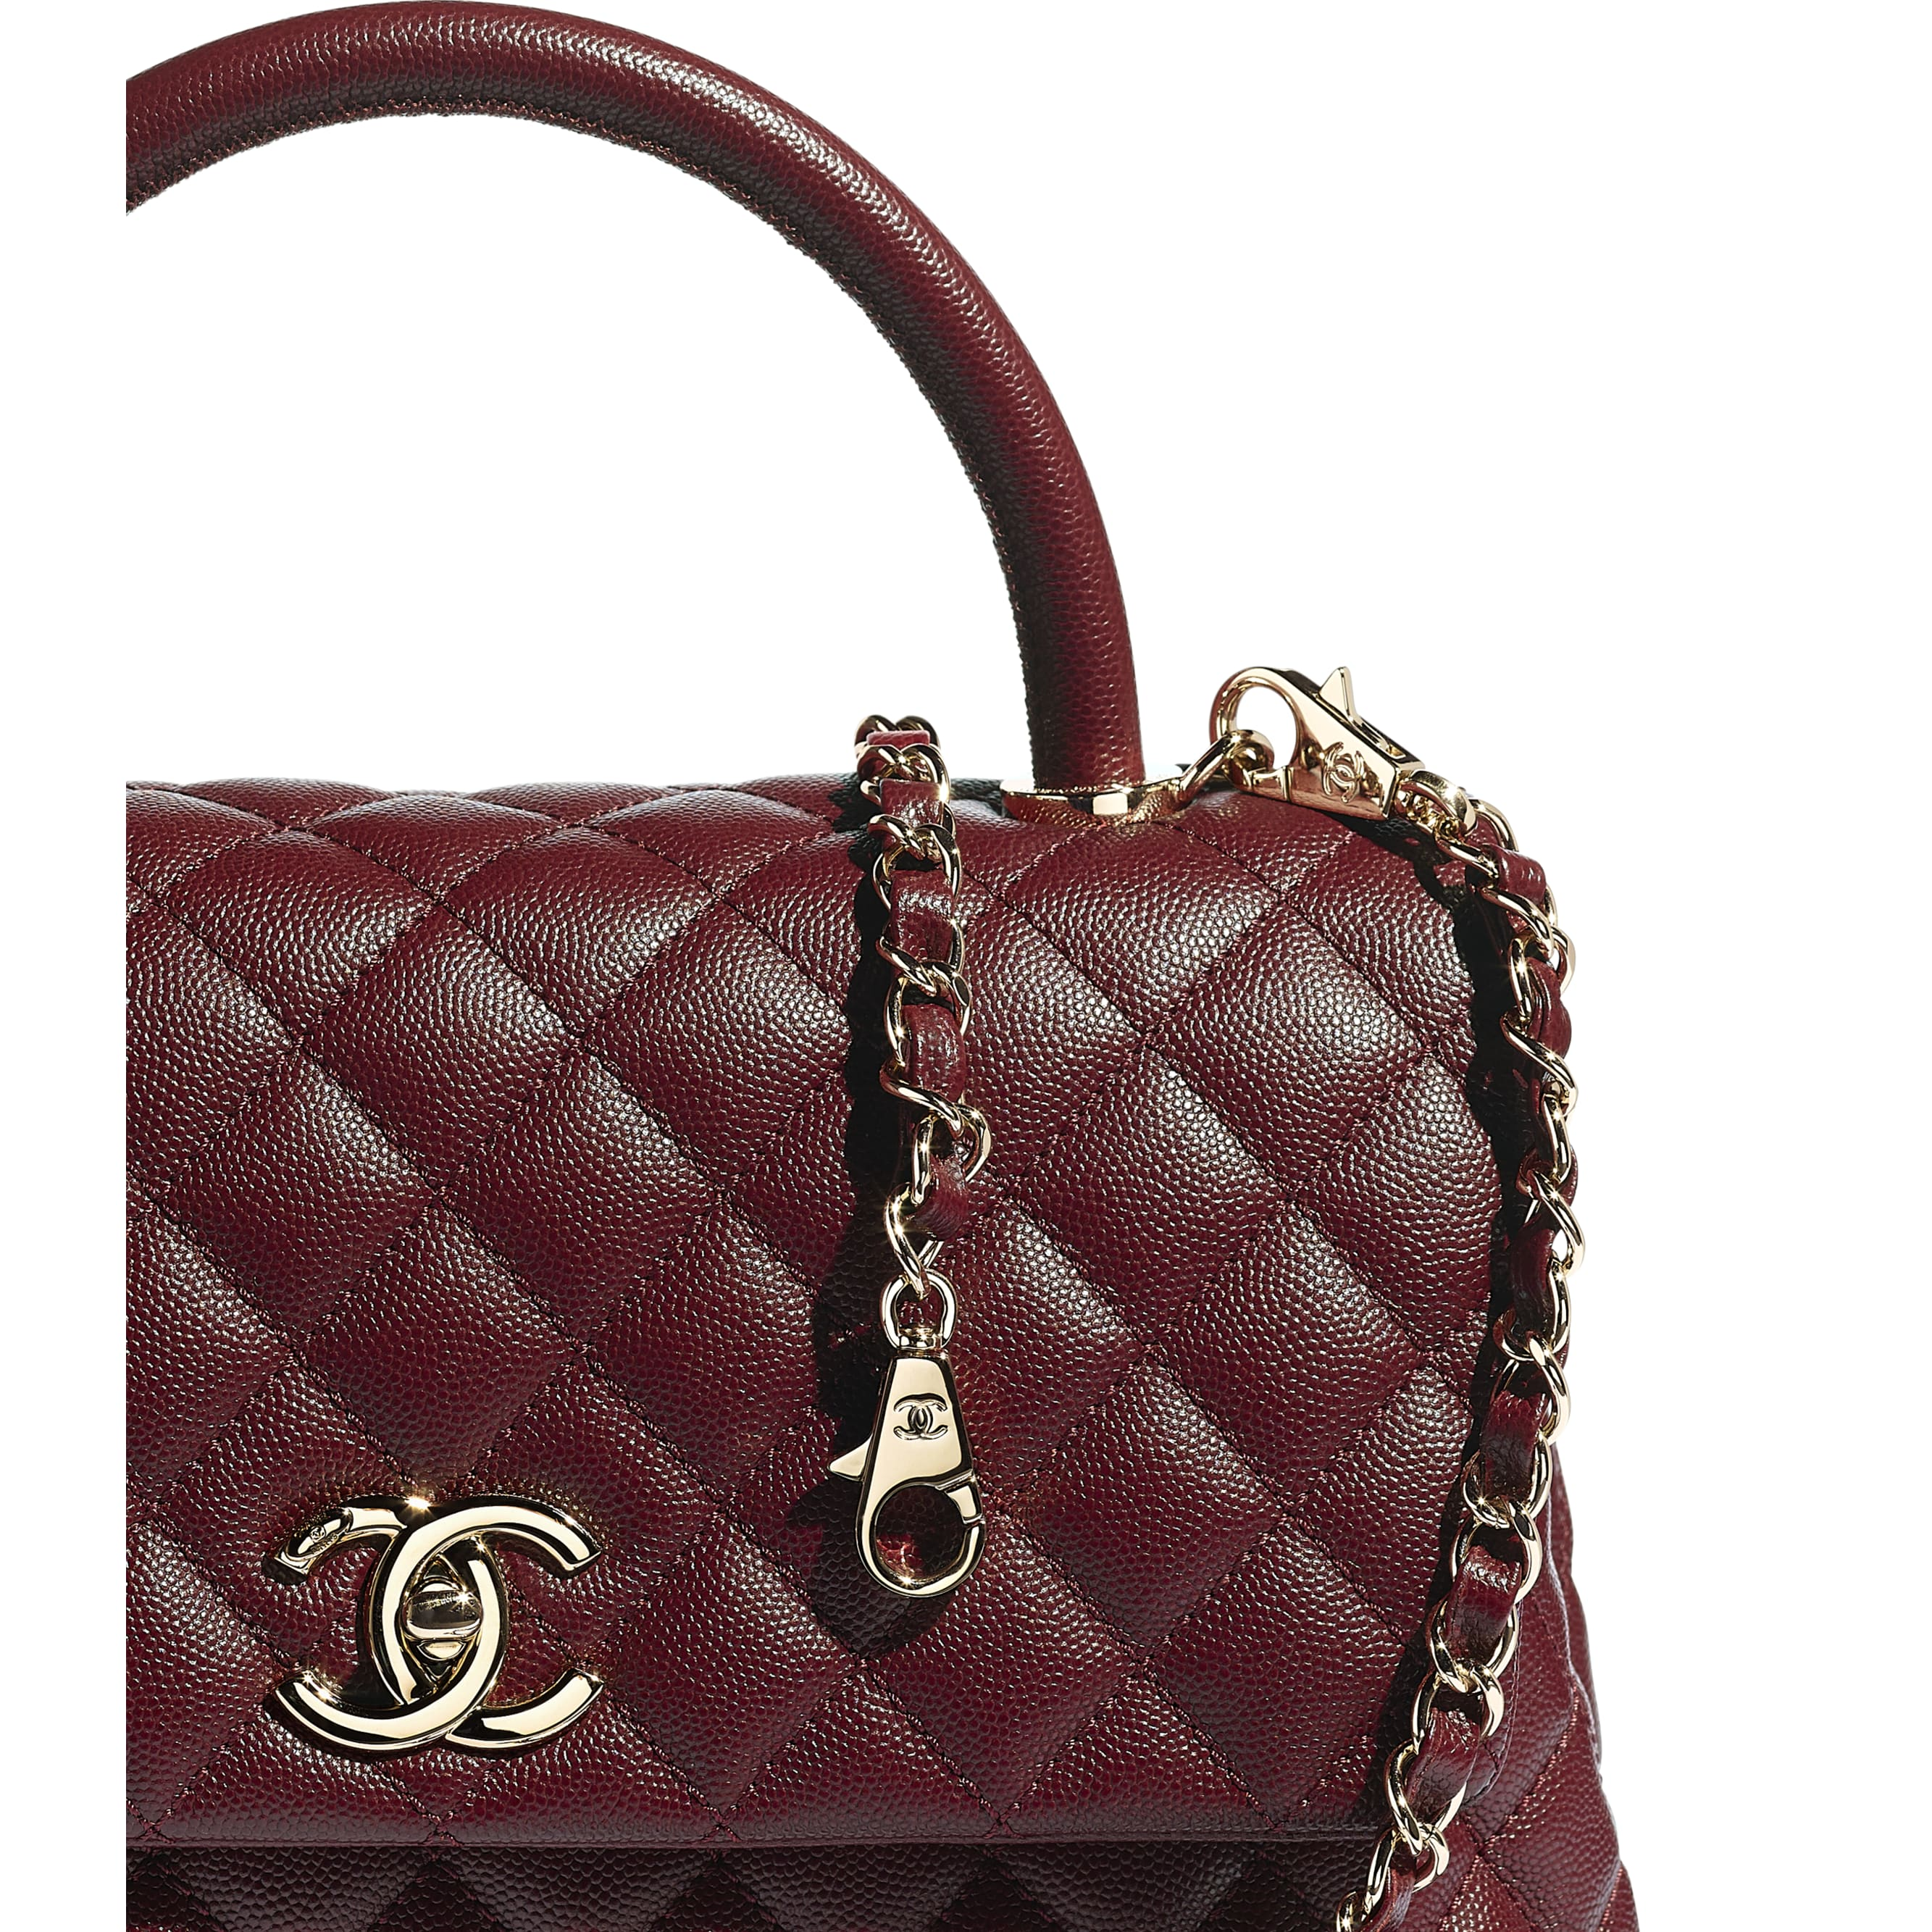 Flap Bag With Top Handle - Burgundy - Grained Calfskin & Gold-Tone Metal - CHANEL - Extra view - see standard sized version